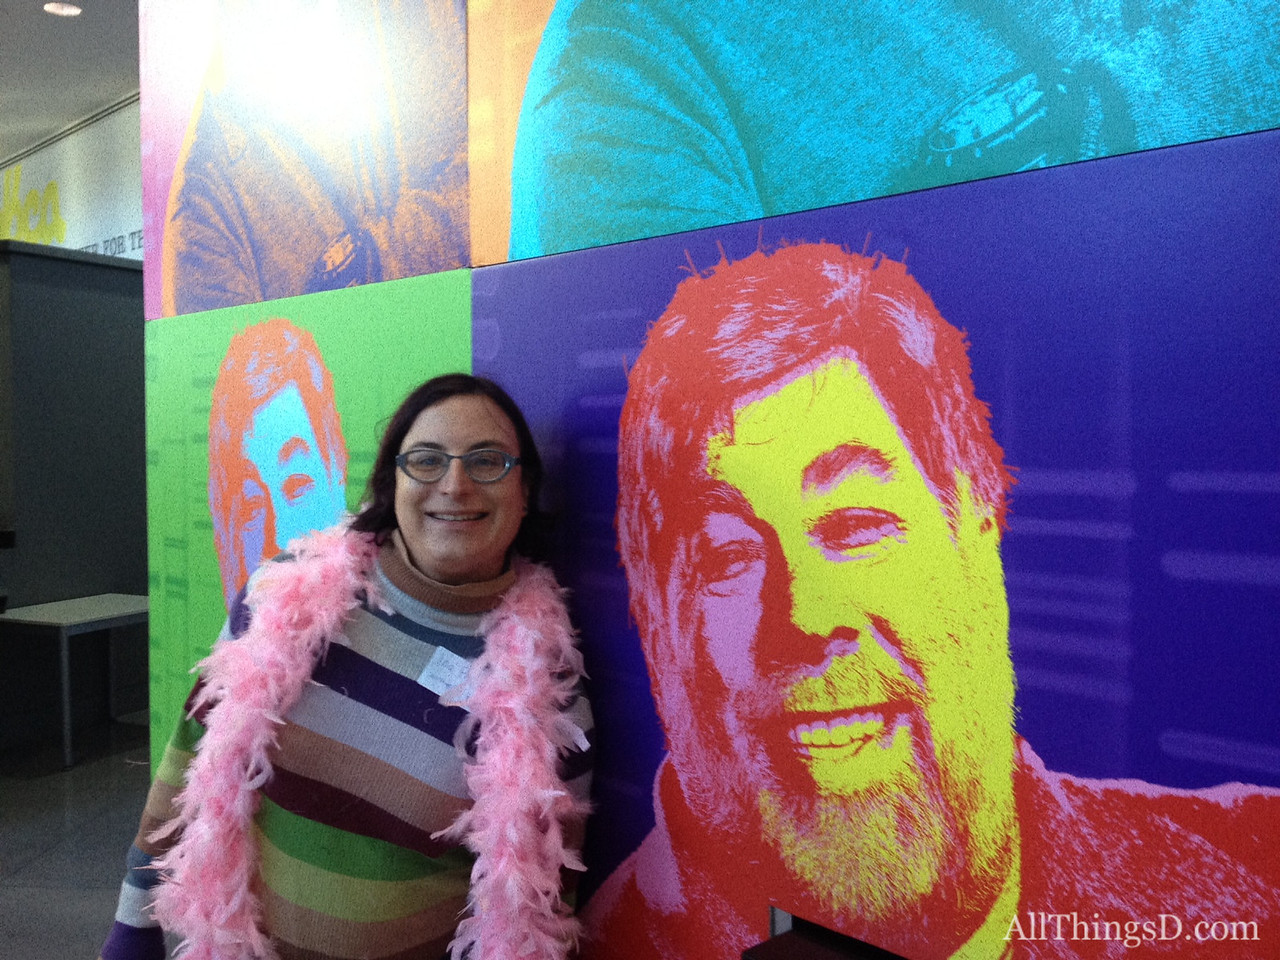 AllThingsD's Ina Fried with the Woz-Warhol.